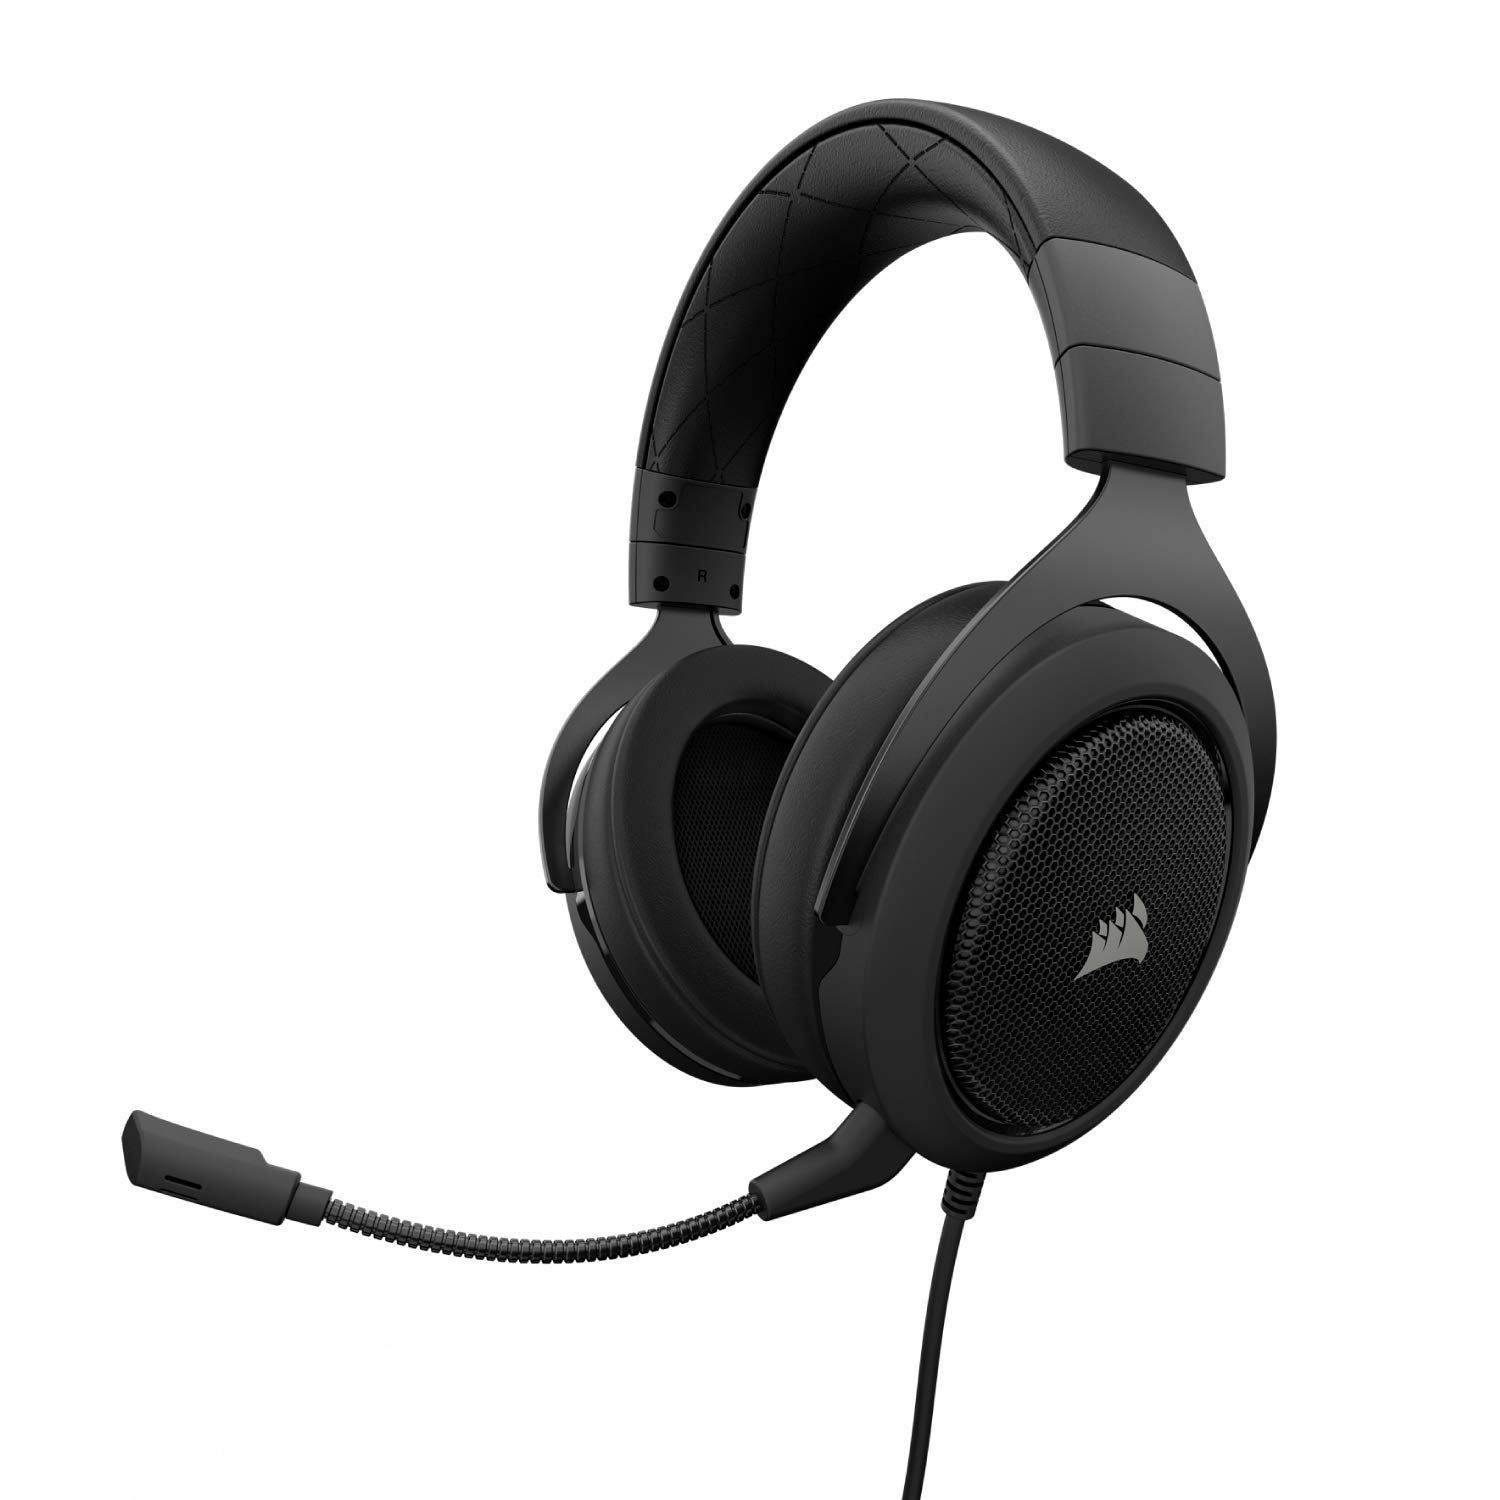 Corsair HS60 - 7.1 Virtual Surround Sound PC Gaming Headset w/USB DAC - Discord Certified Headphones - Compatible with Xbox One, PS4, and Nintendo Switch - Carbon by Corsair